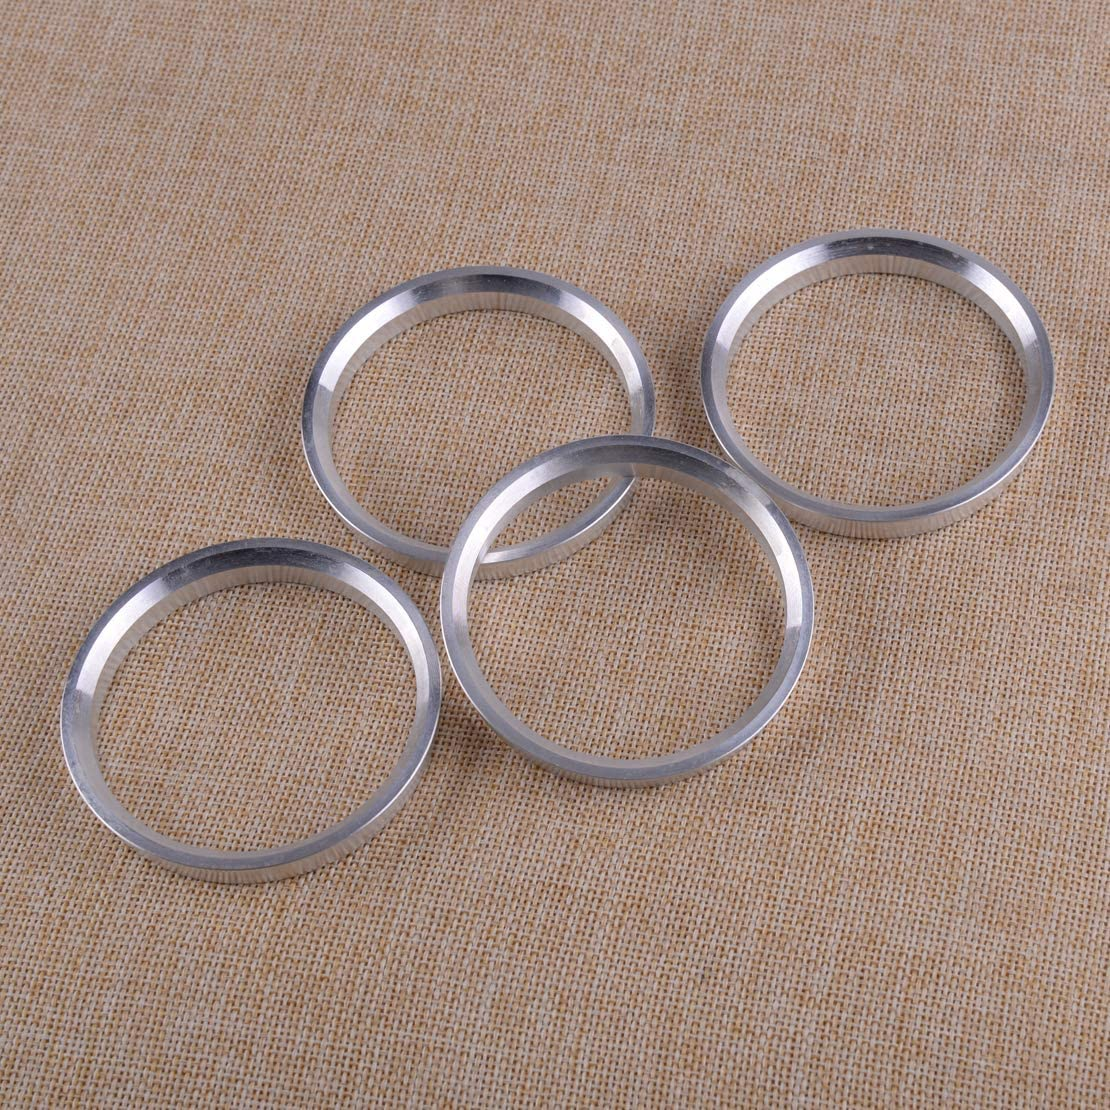 CITALL 4Pcs Aluminum Alloy Wheel Spacer Hub Centric Rings 71.5mm OD to 64.1mm ID